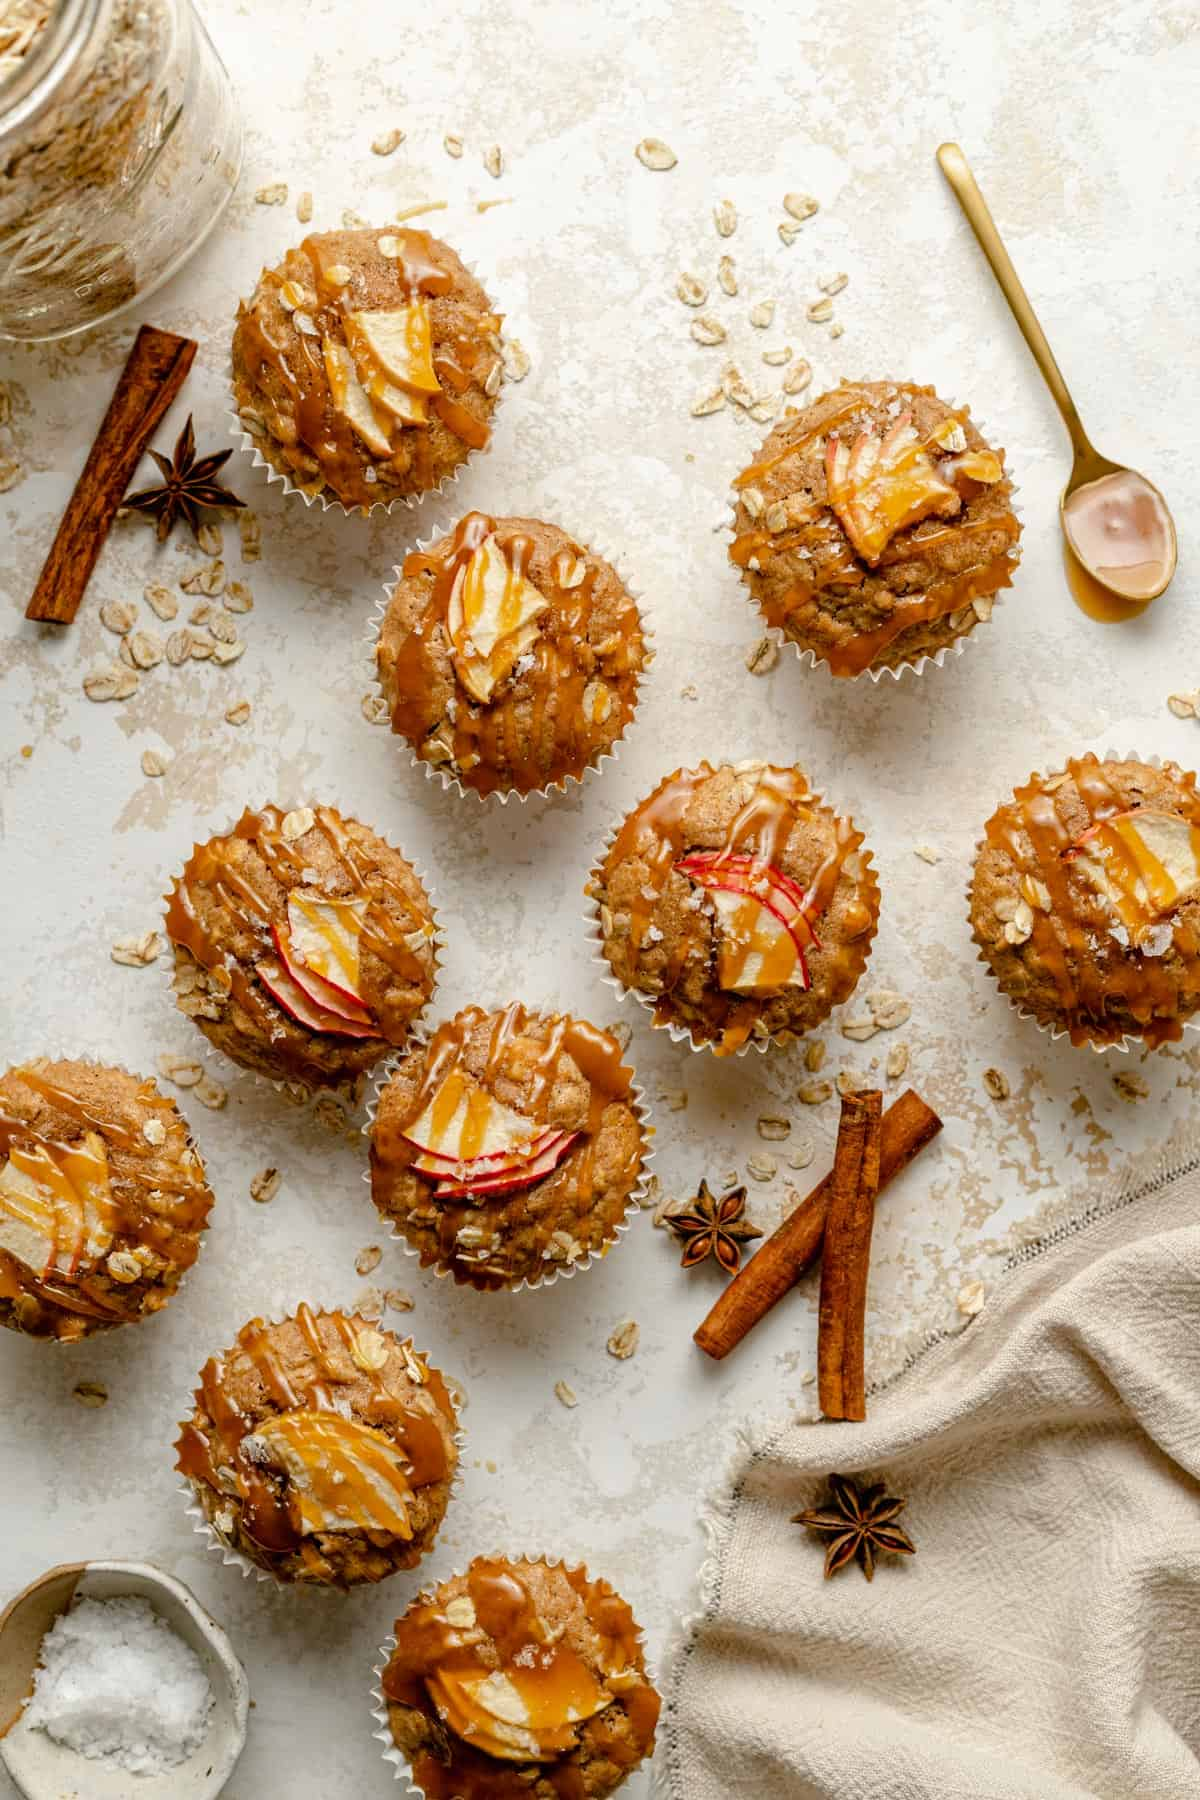 Array of apple oatmeal muffins with caramel drizzled on top and spices nearby